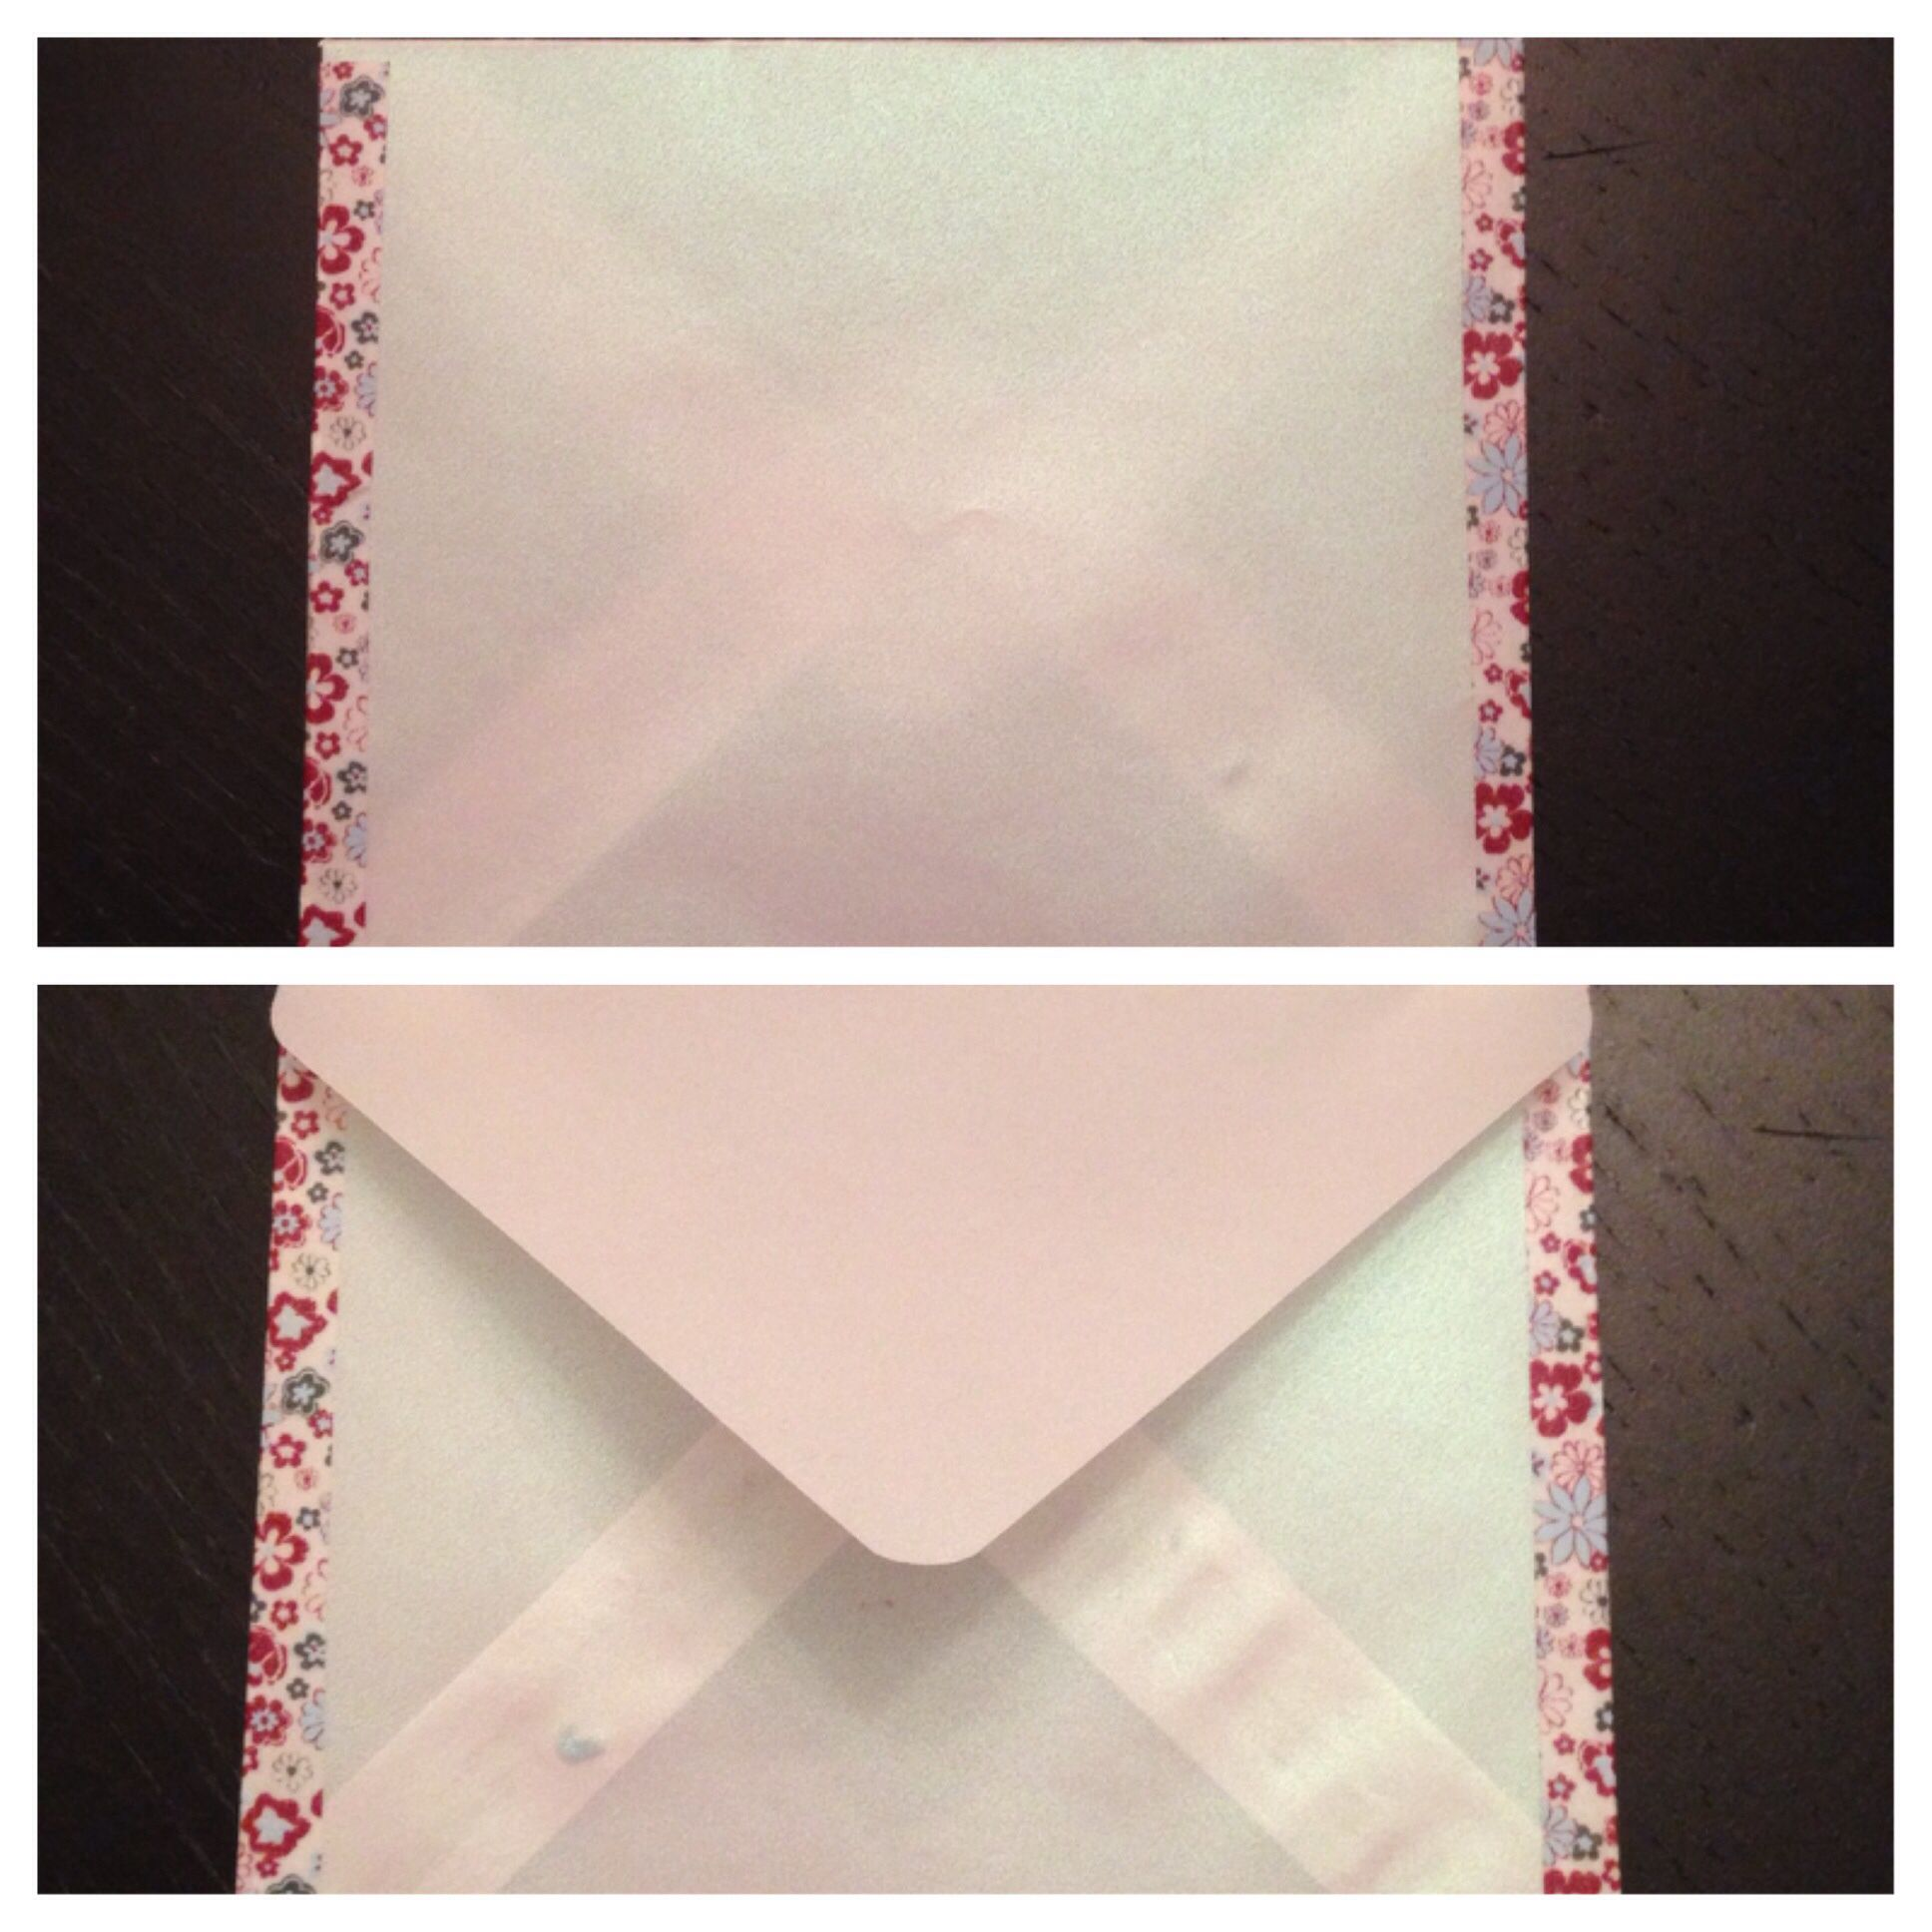 Handmade velum envelope decorated with Washi tape.